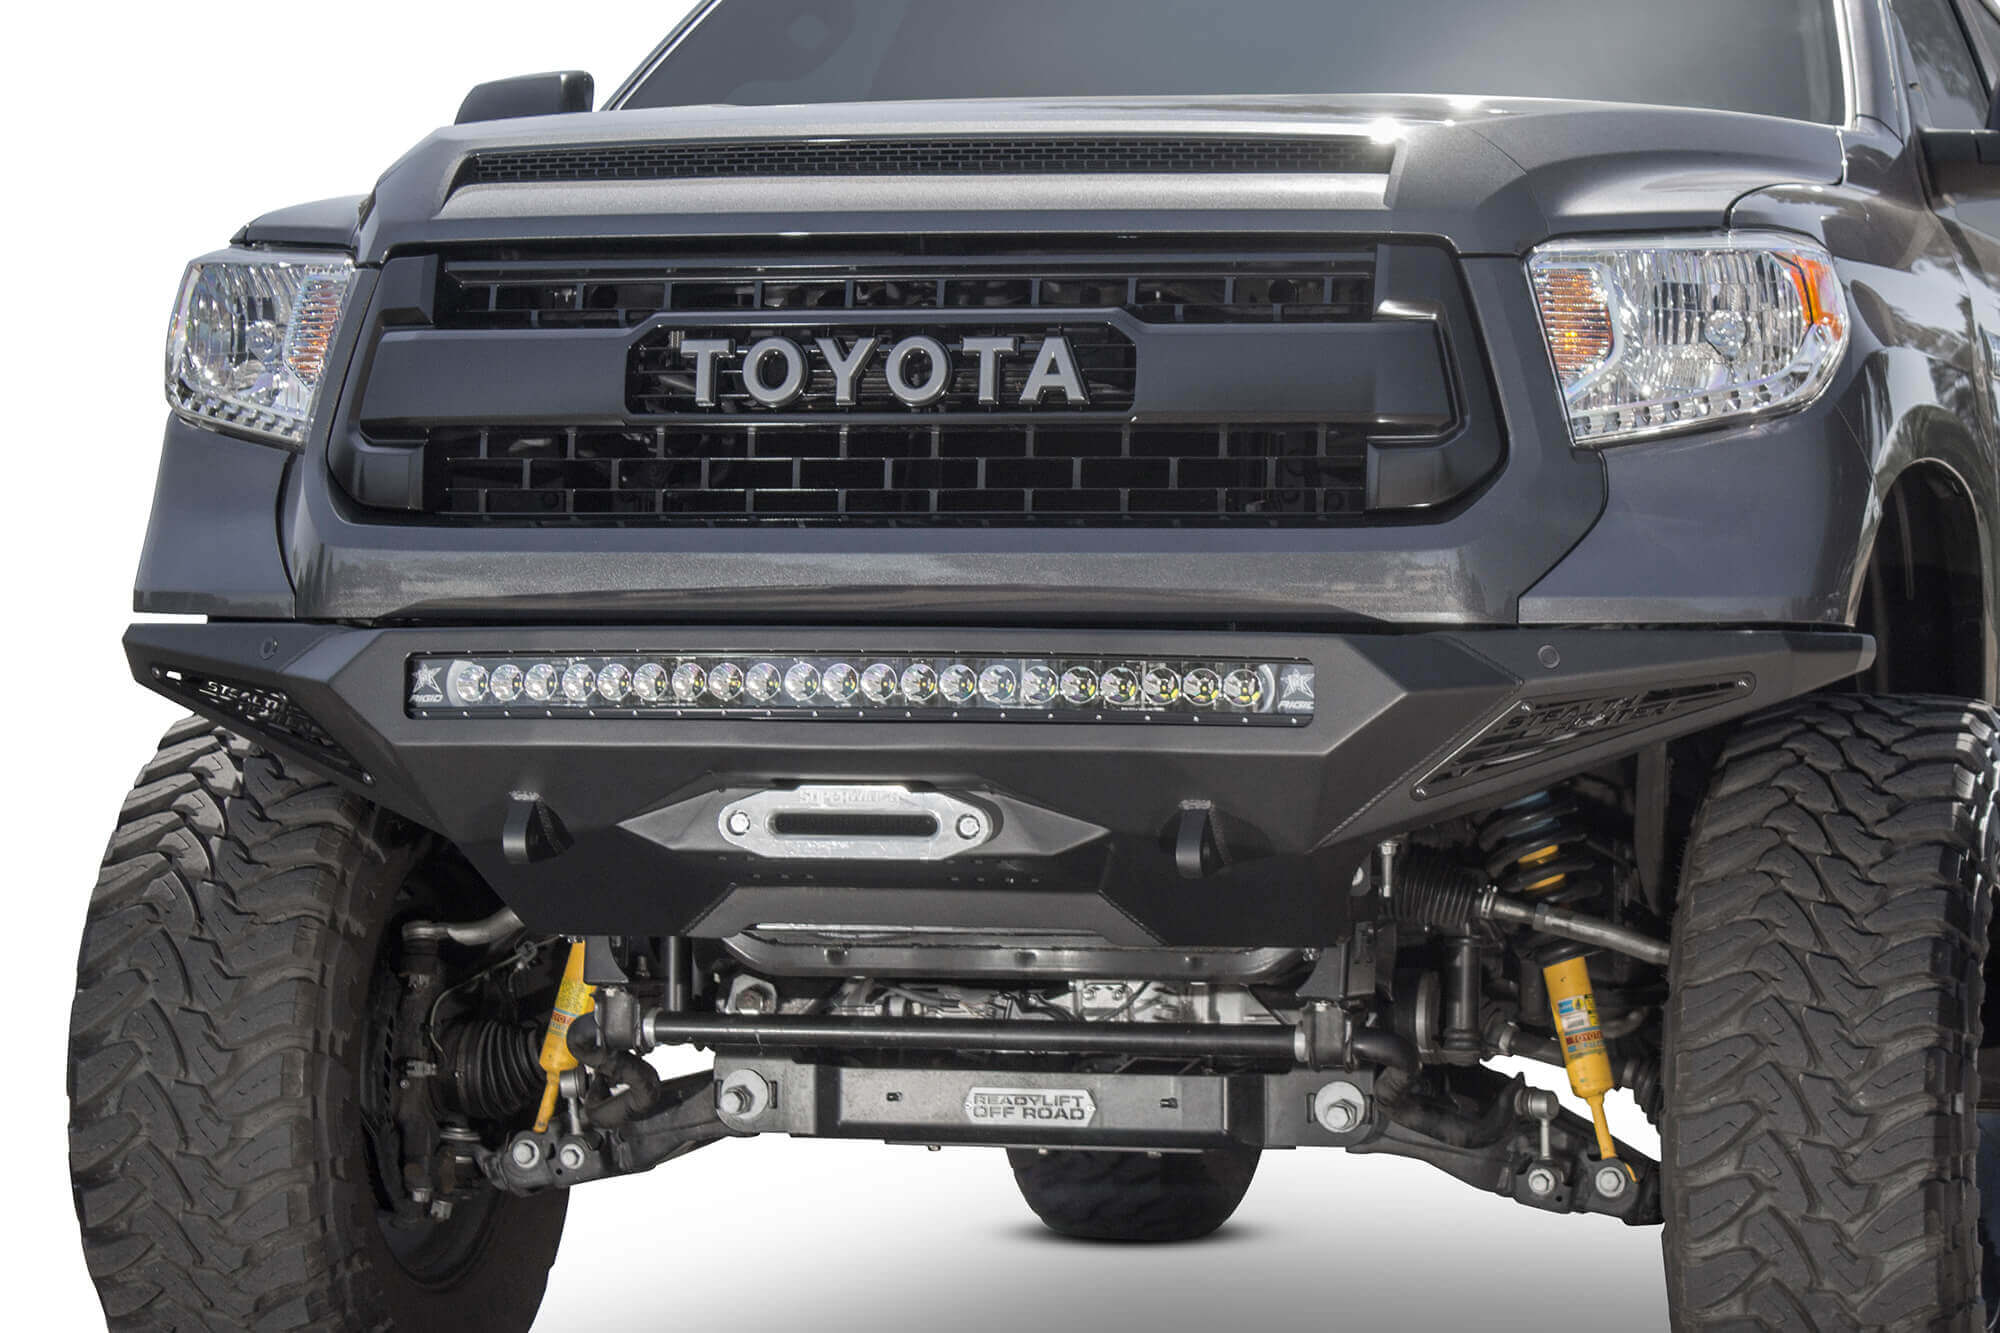 ADD 2014-2020 Toyota Tundra Stealth Fighter Winch Front Bumper W/ Sensors